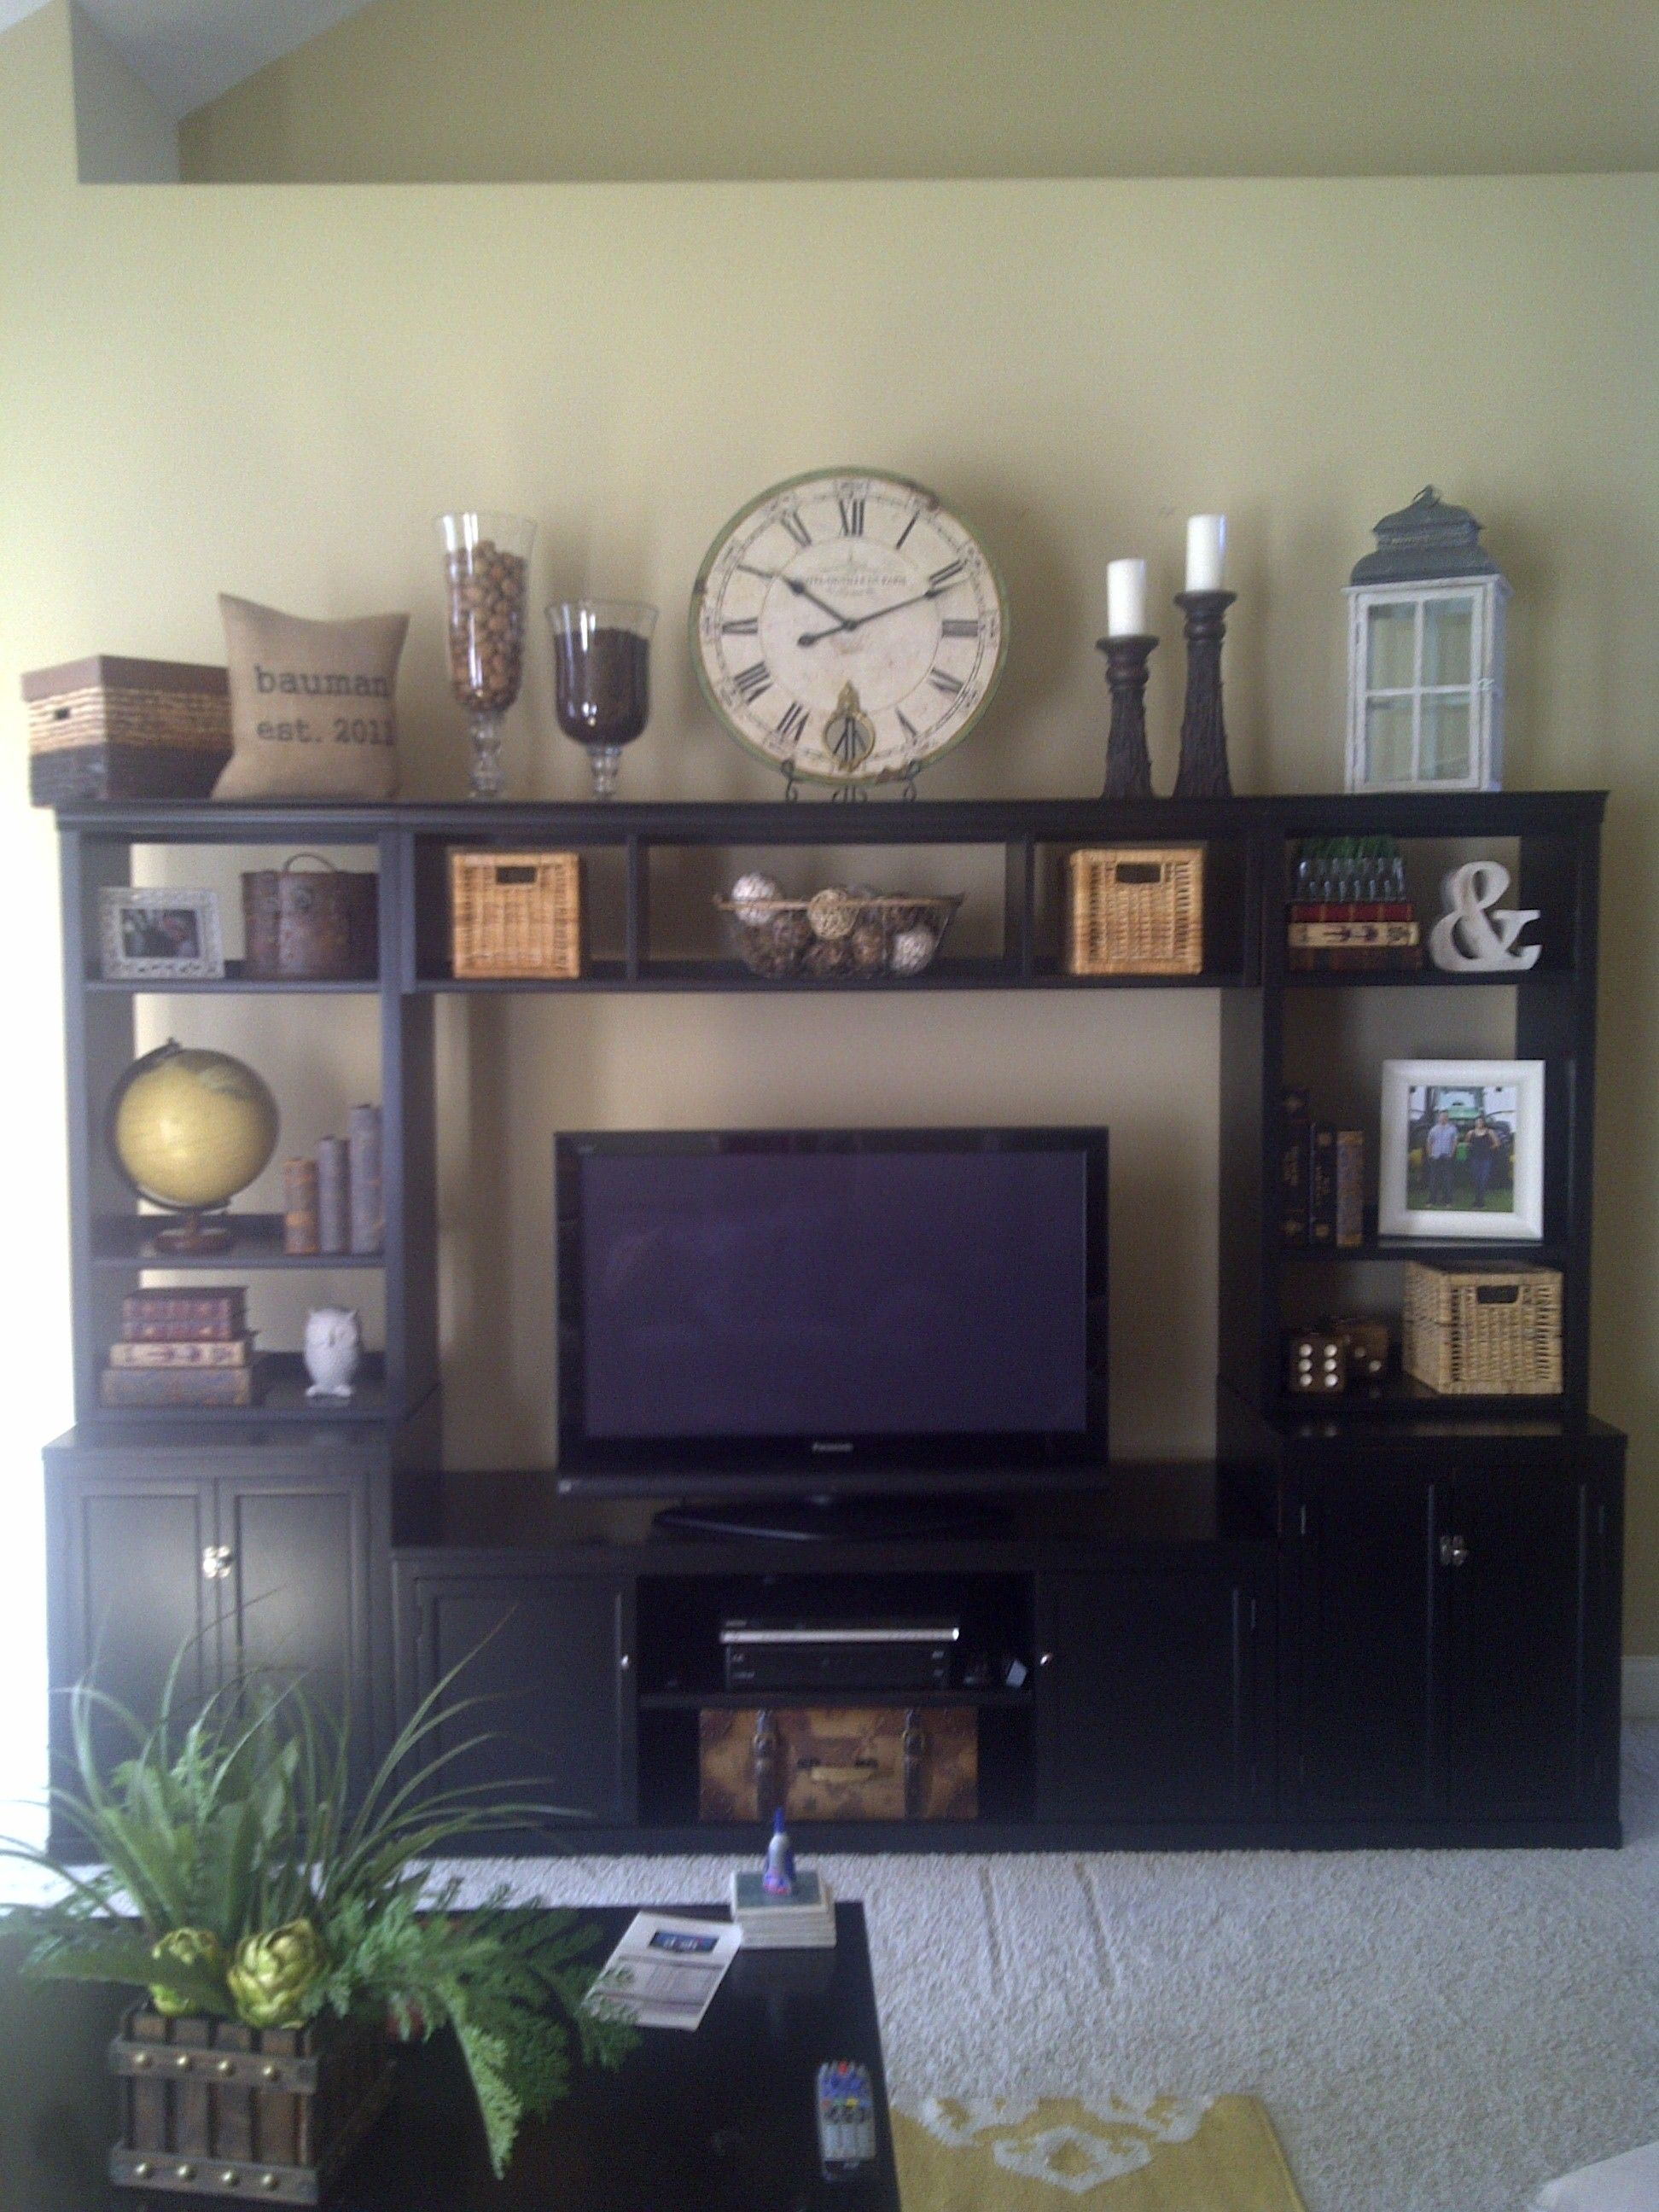 Great Idea For Items To Fill Our Entertainment Center Entertainment Center Decor Entertainment Center Entertainment Center Shelf